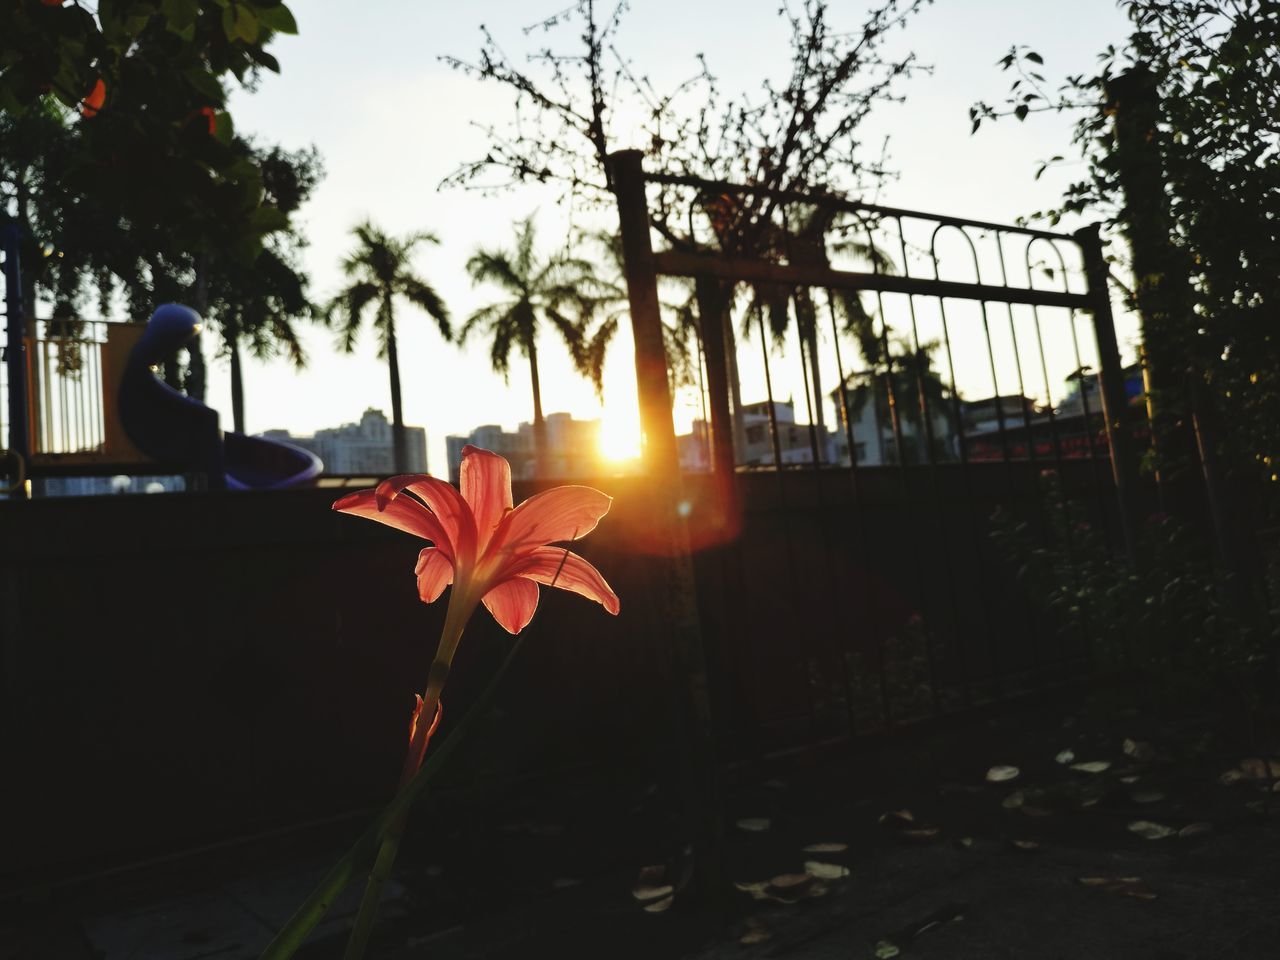 sunset, flower, sunlight, growth, outdoors, sun, nature, beauty in nature, no people, day, plant, leaf, close-up, sky, fragility, tree, freshness, city